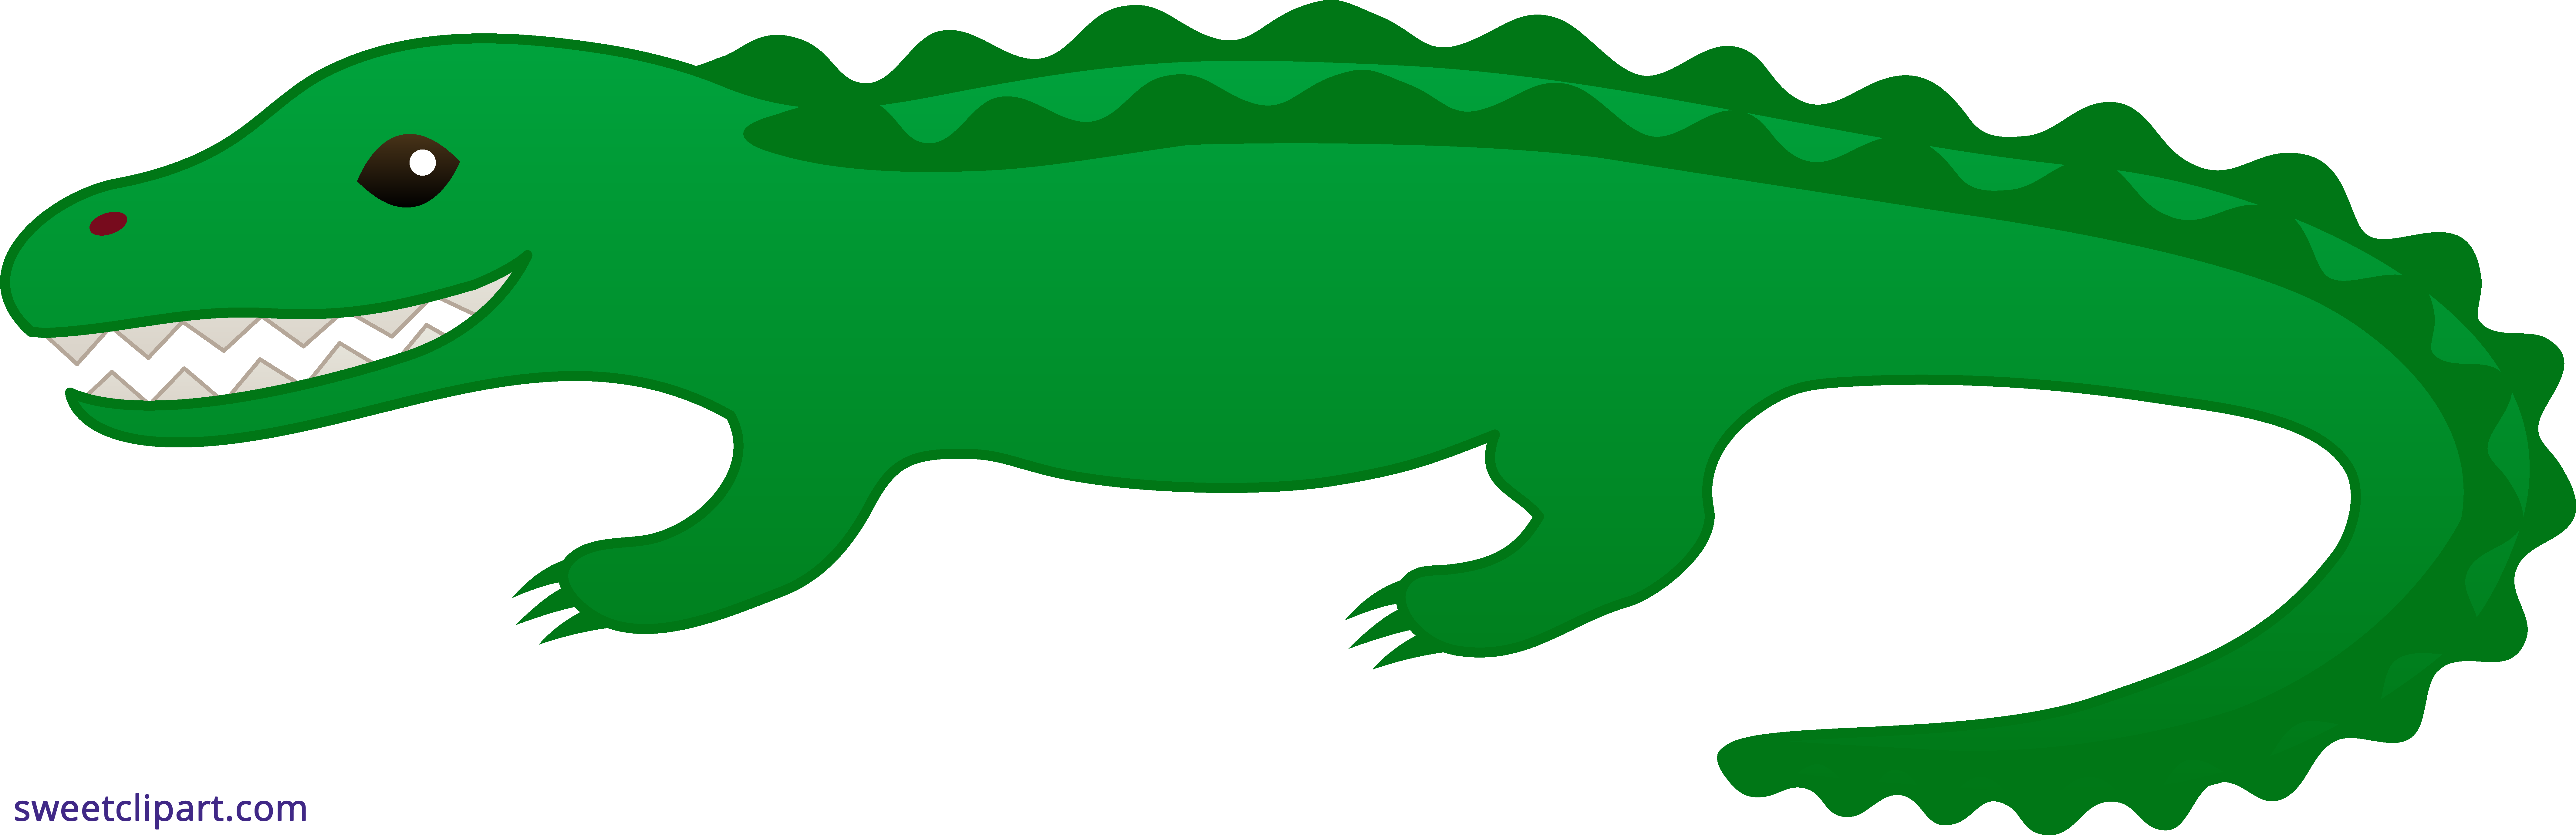 png library download Alligator clipart. Sweet clip art